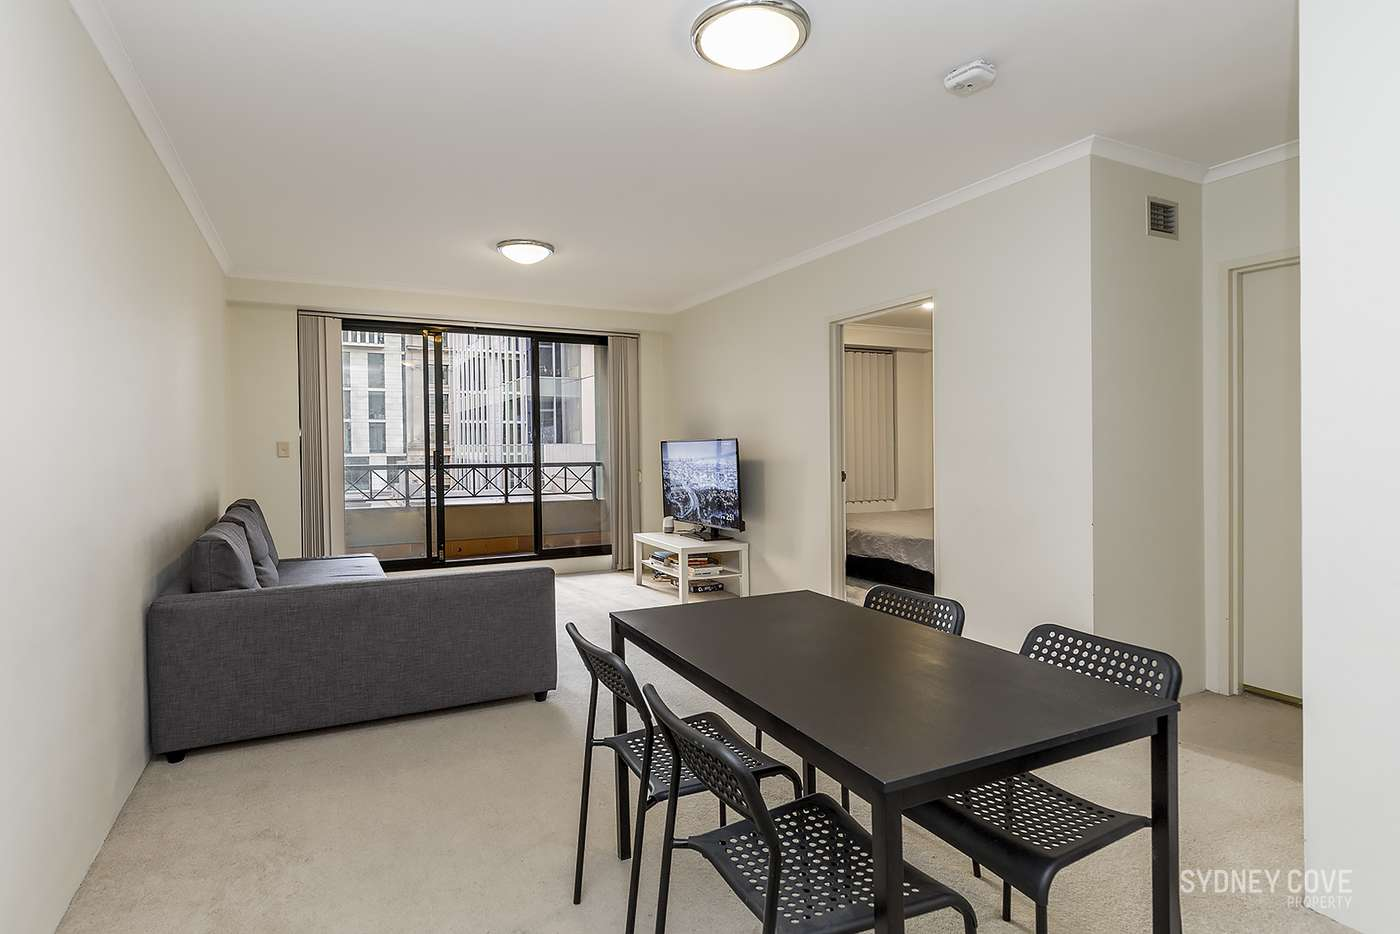 Main view of Homely apartment listing, 806/1 Hosking Place, Sydney NSW 2000